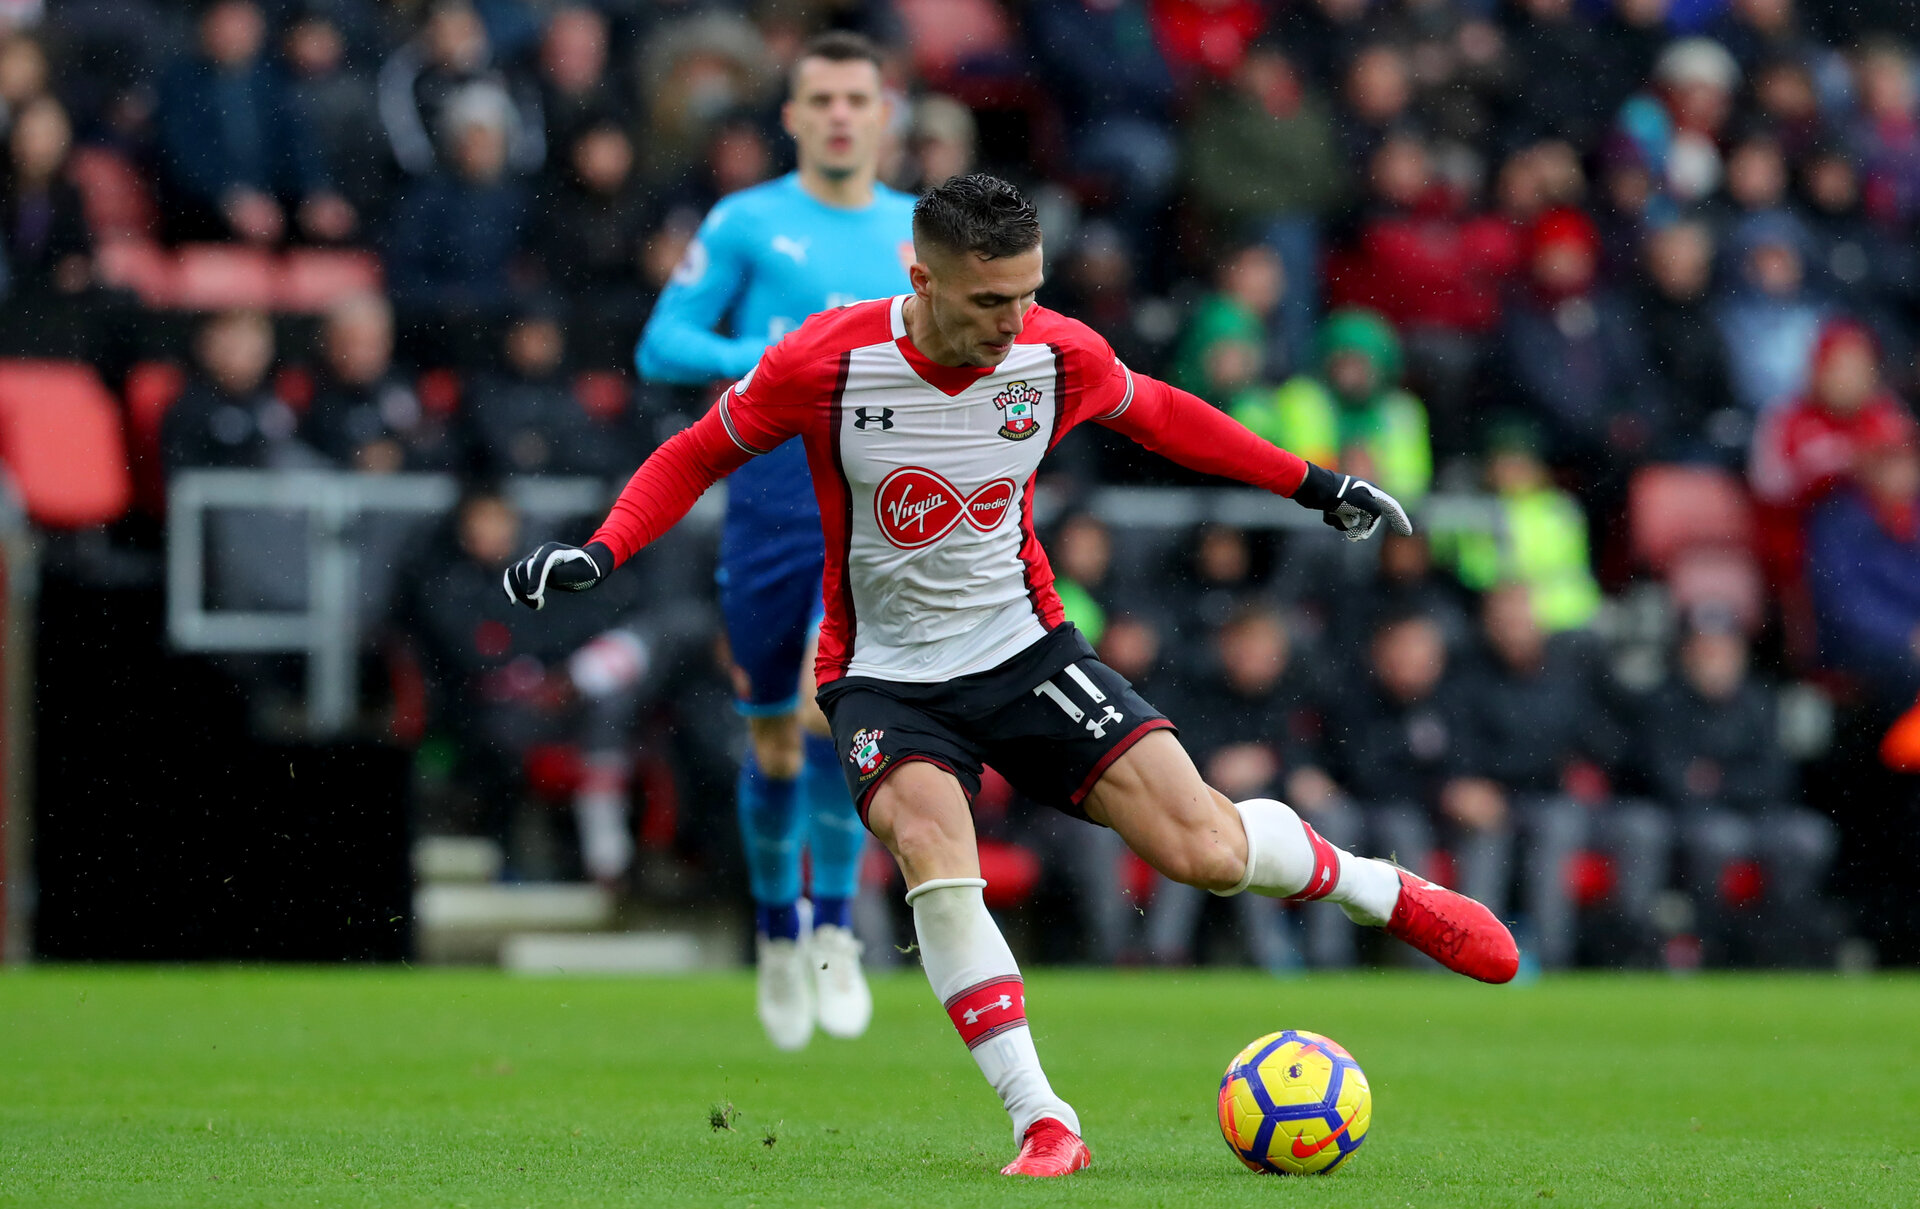 SOUTHAMPTON, ENGLAND - DECEMBER 10: Southampton's Dusan Tadic passes to assist Charlie Austin to open the scoring during the Premier League match between Southampton and Arsenal at St Mary's Stadium on December 10, 2017 in Southampton, England. (Photo by Matt Watson/Southampton FC via Getty Images)